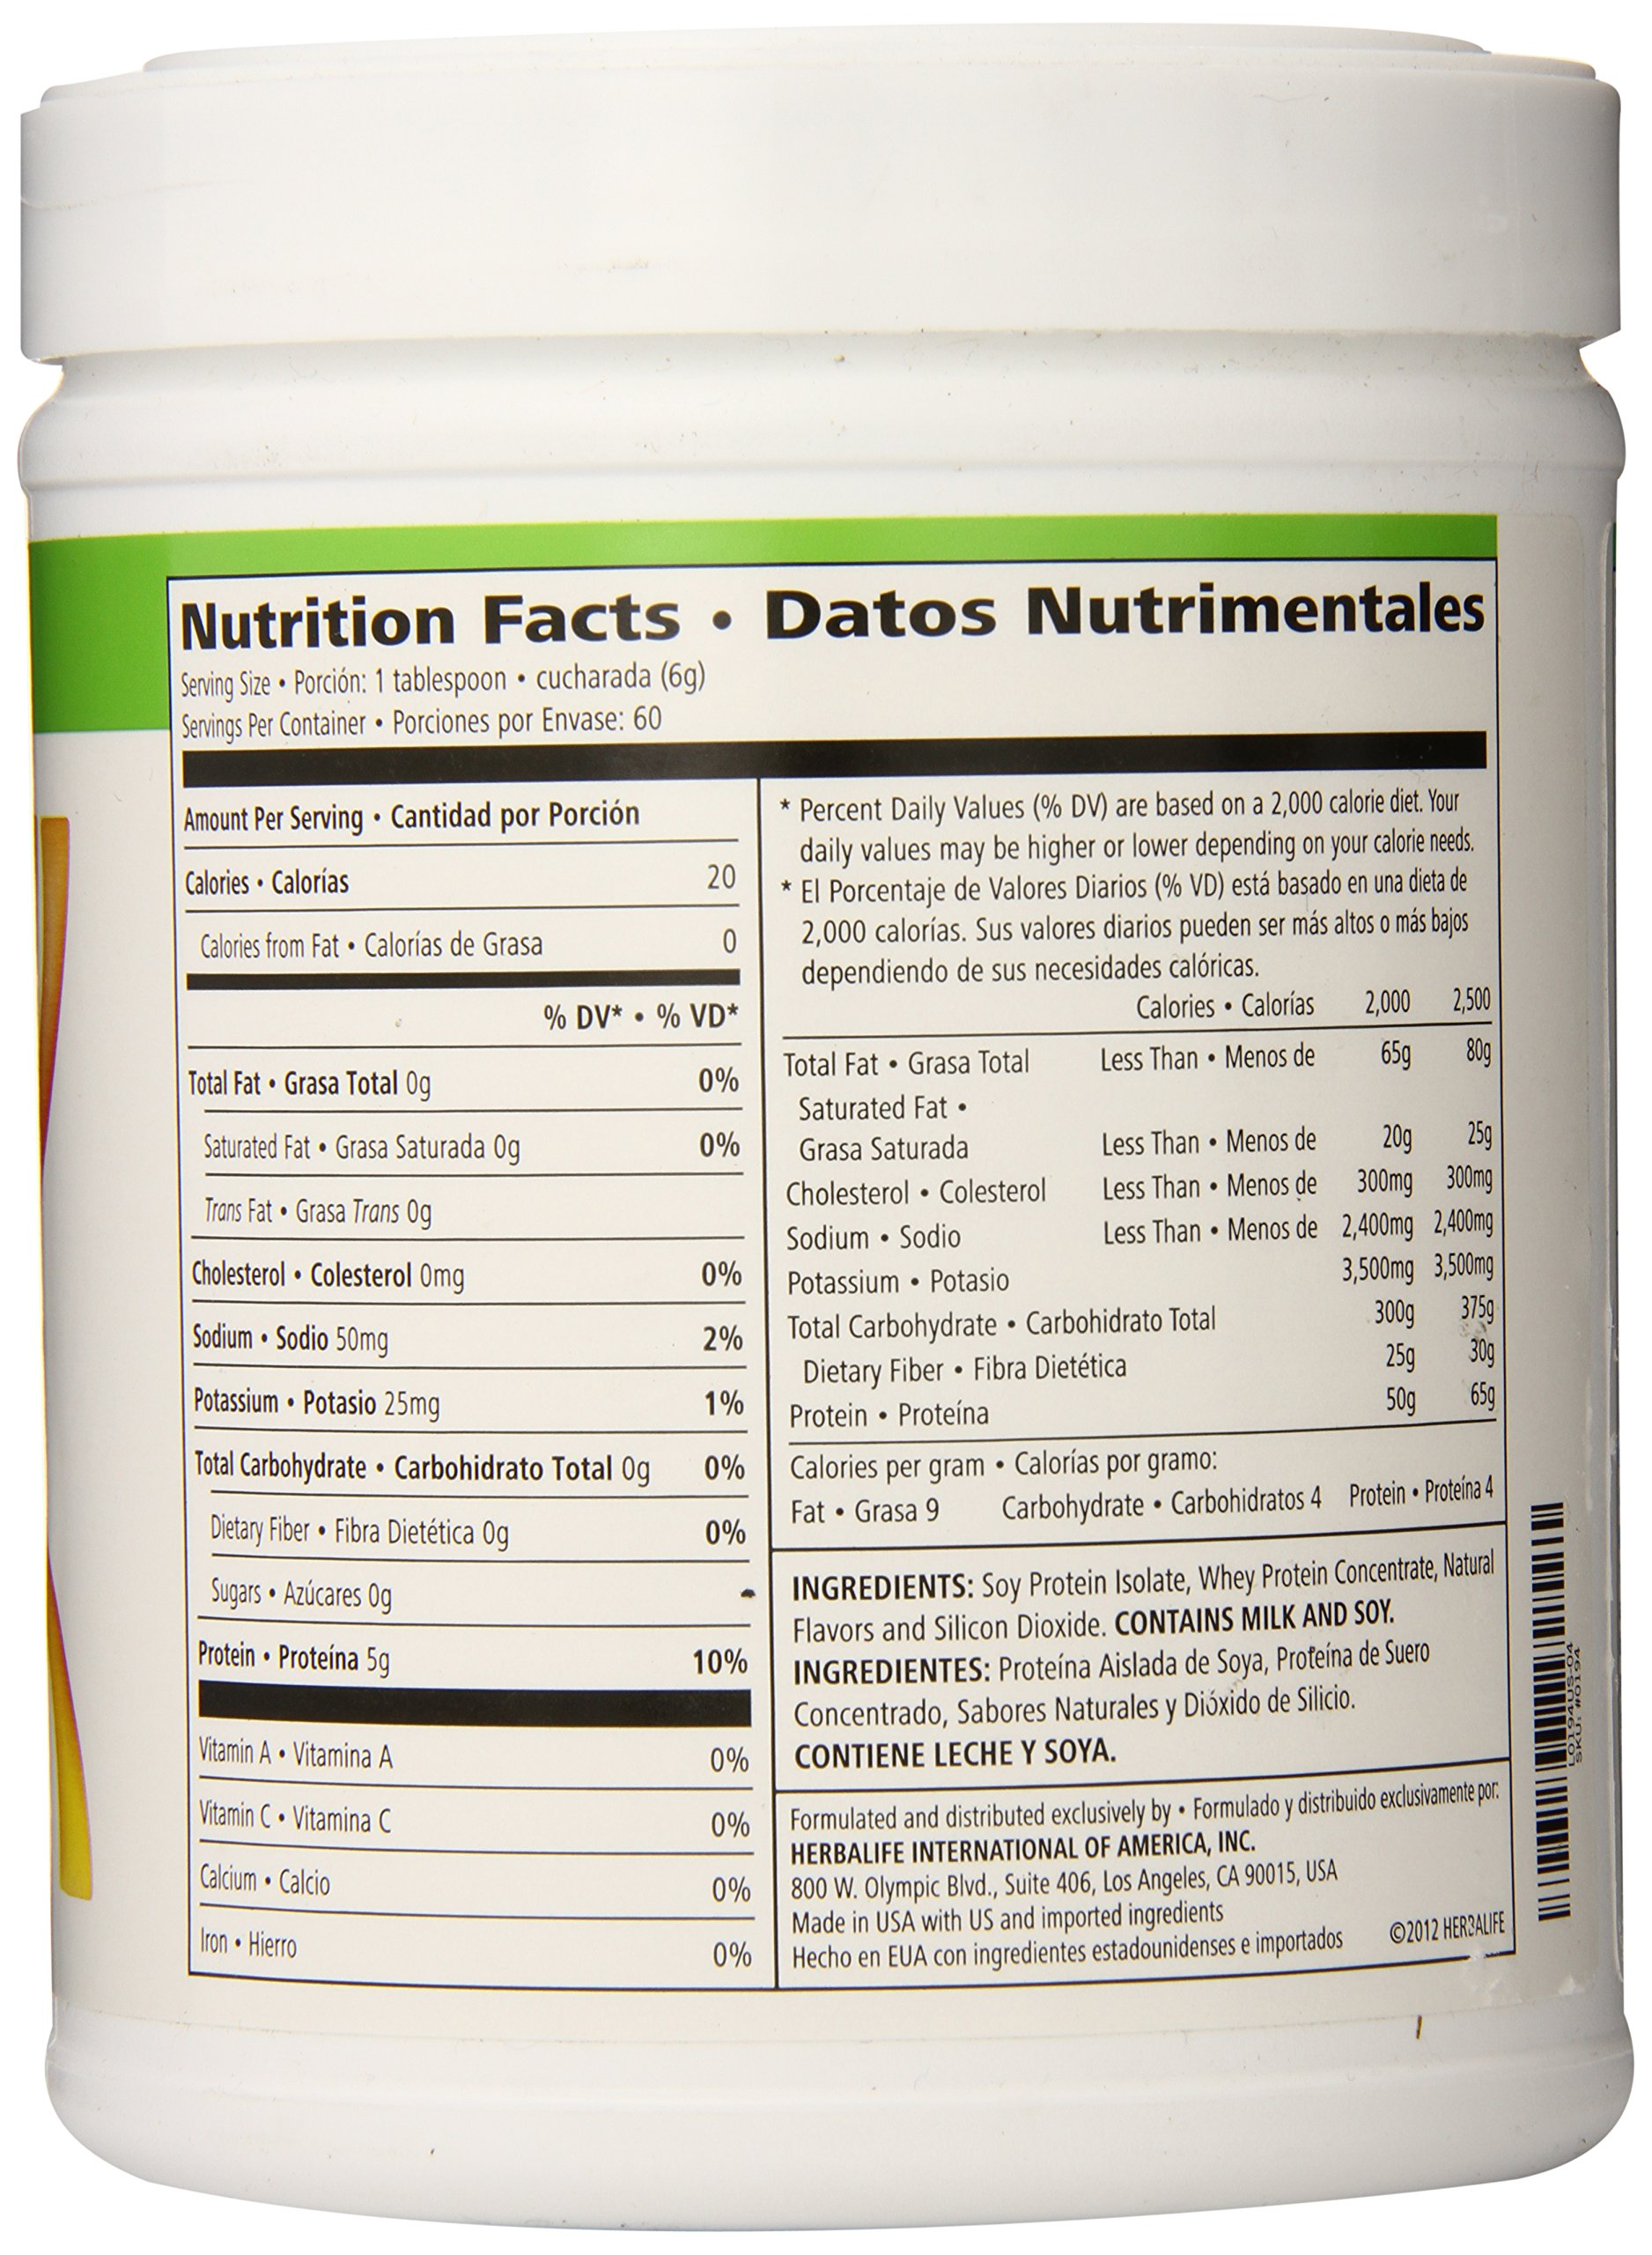 This is an image of Dynamite Herbalife Product Nutrition Labels